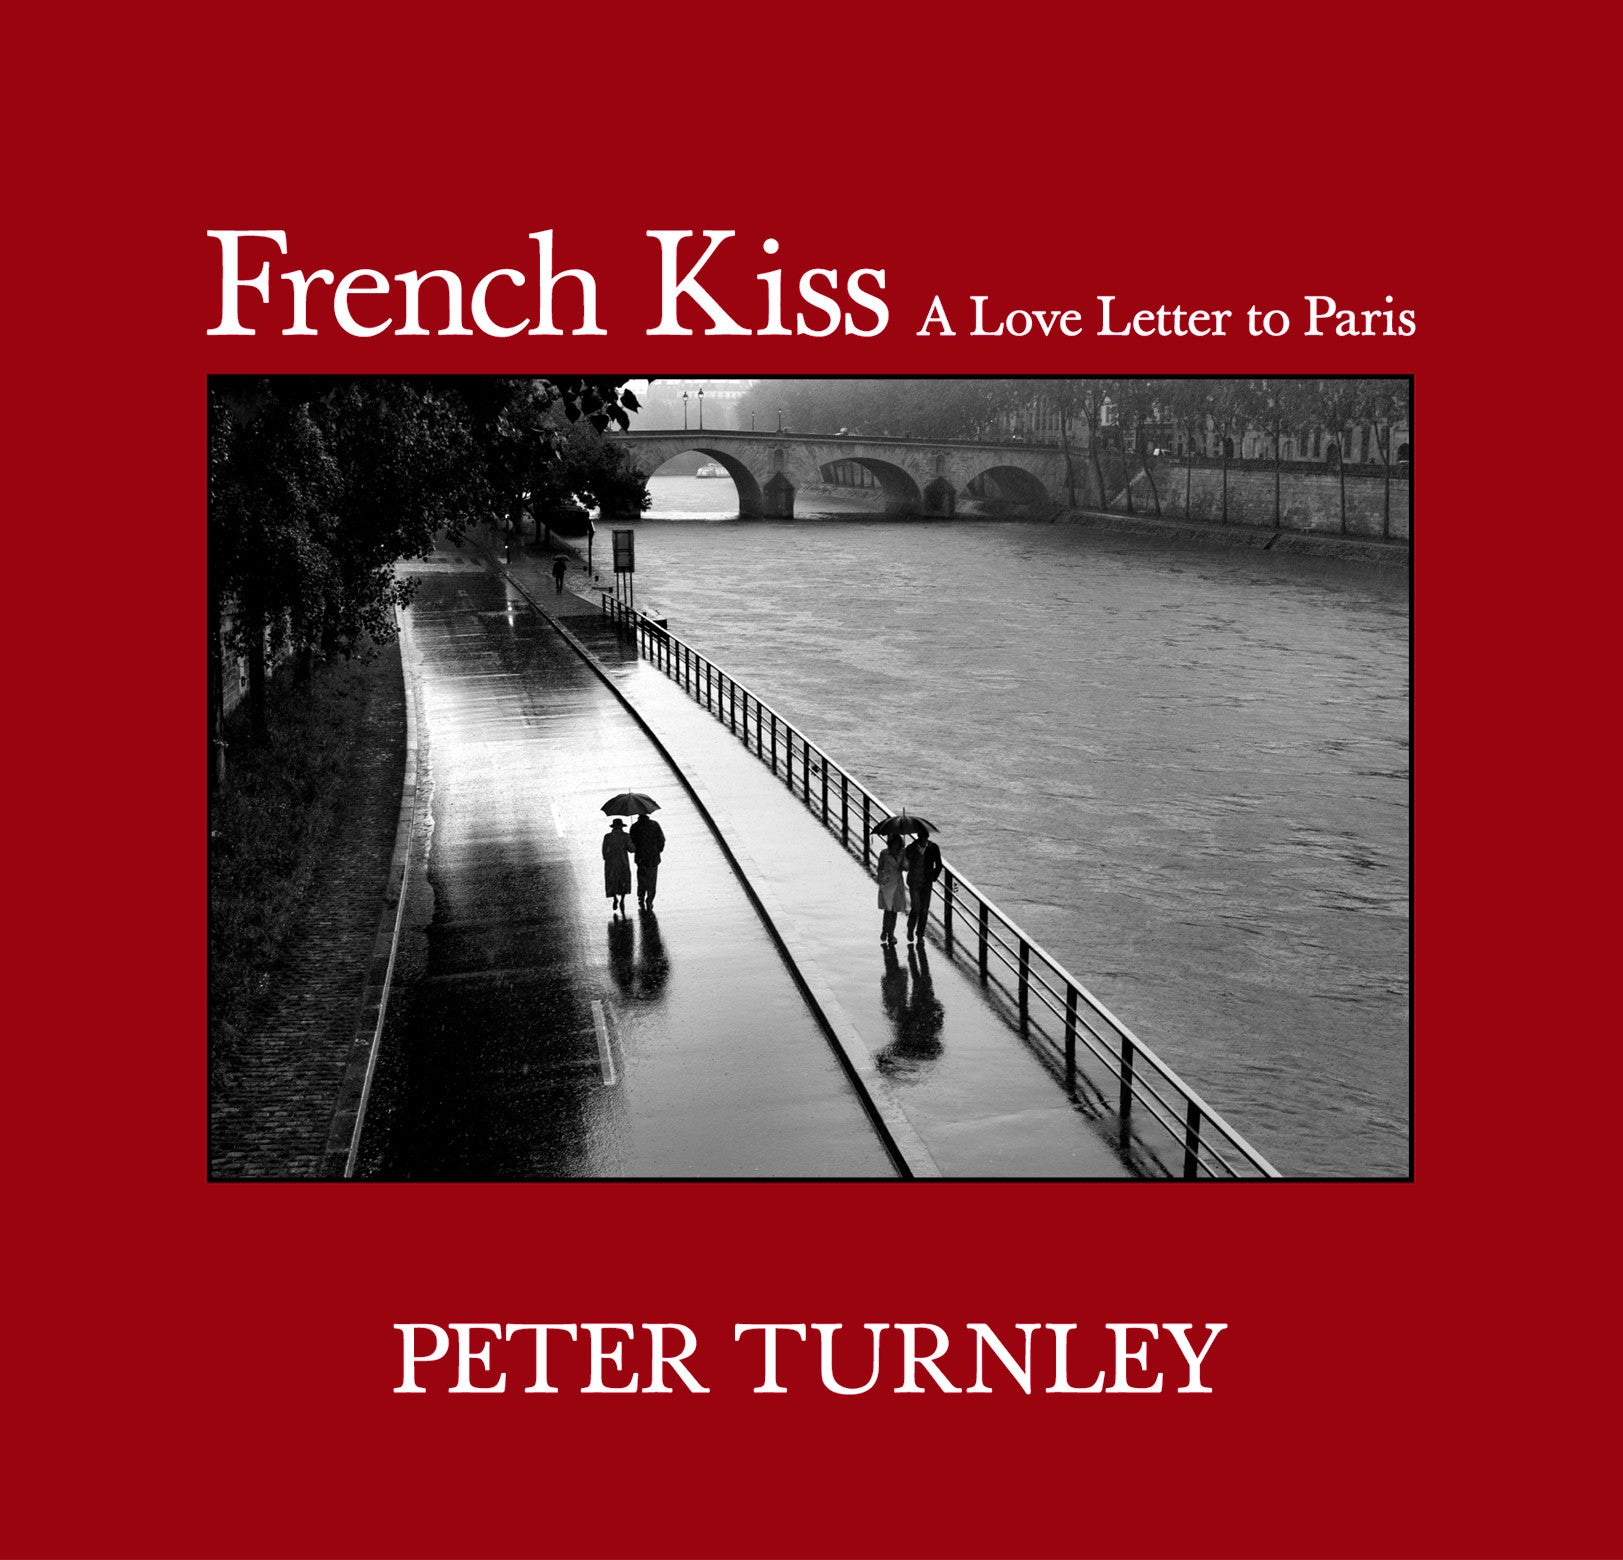 Peter Turnley: French Kiss, A Love Letter to Paris, 2013